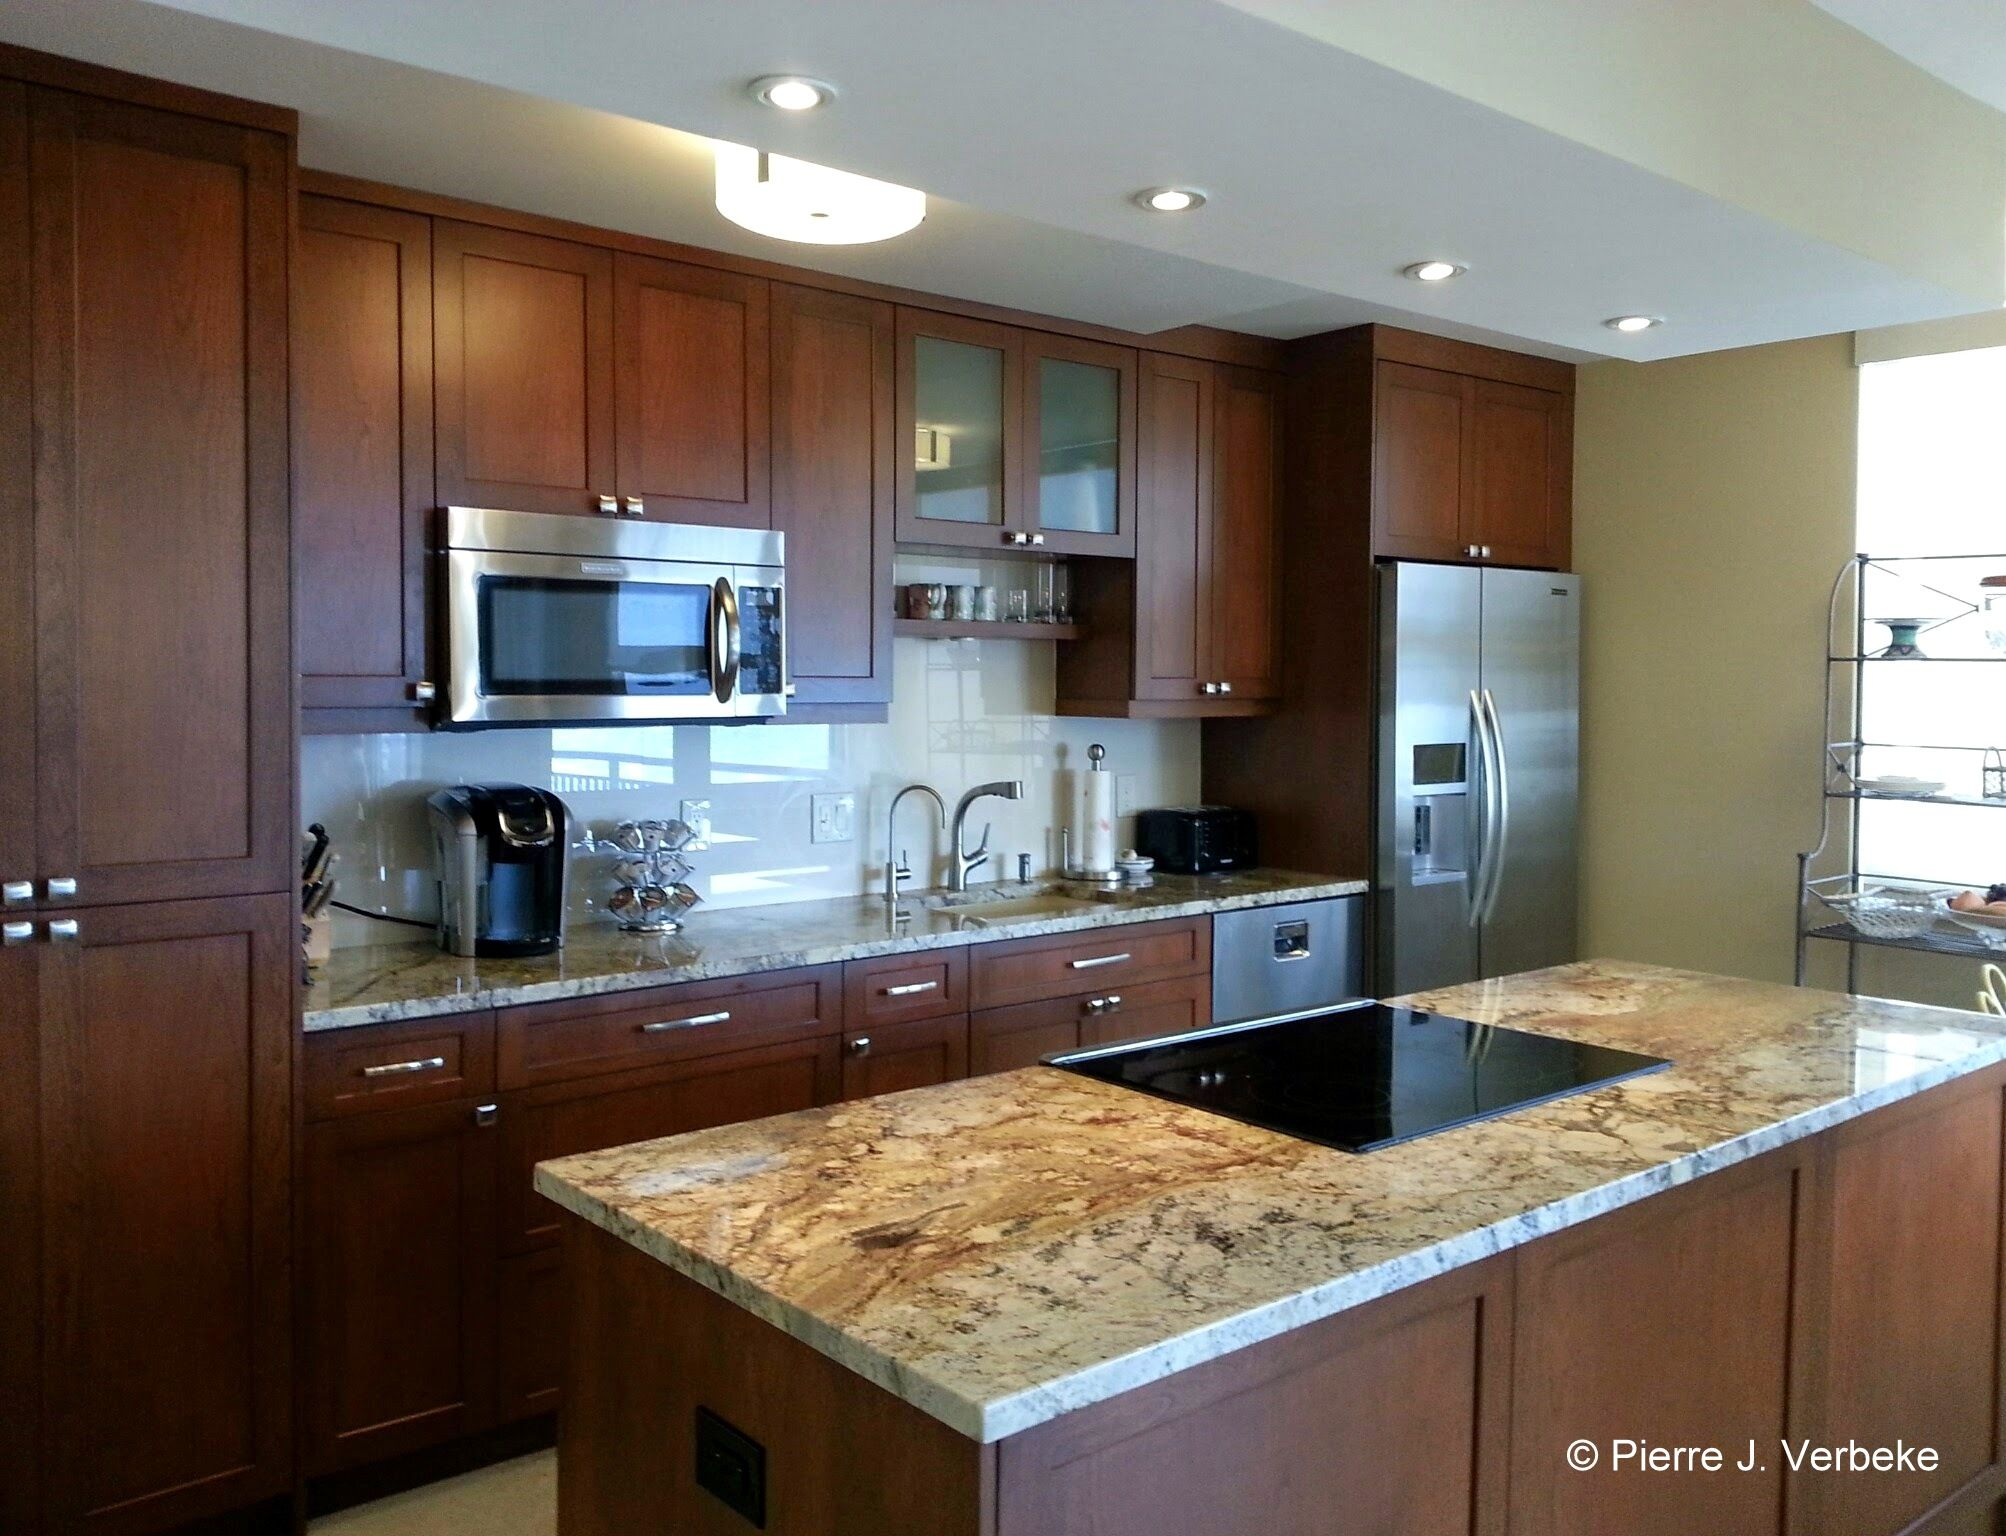 Whitehall Unit 10 E The Stylish New Kitchen Features Extra Tall Cabinets Gorgeous Granite Countertops Tiled Back Splash Top Of Line Stainless Steel